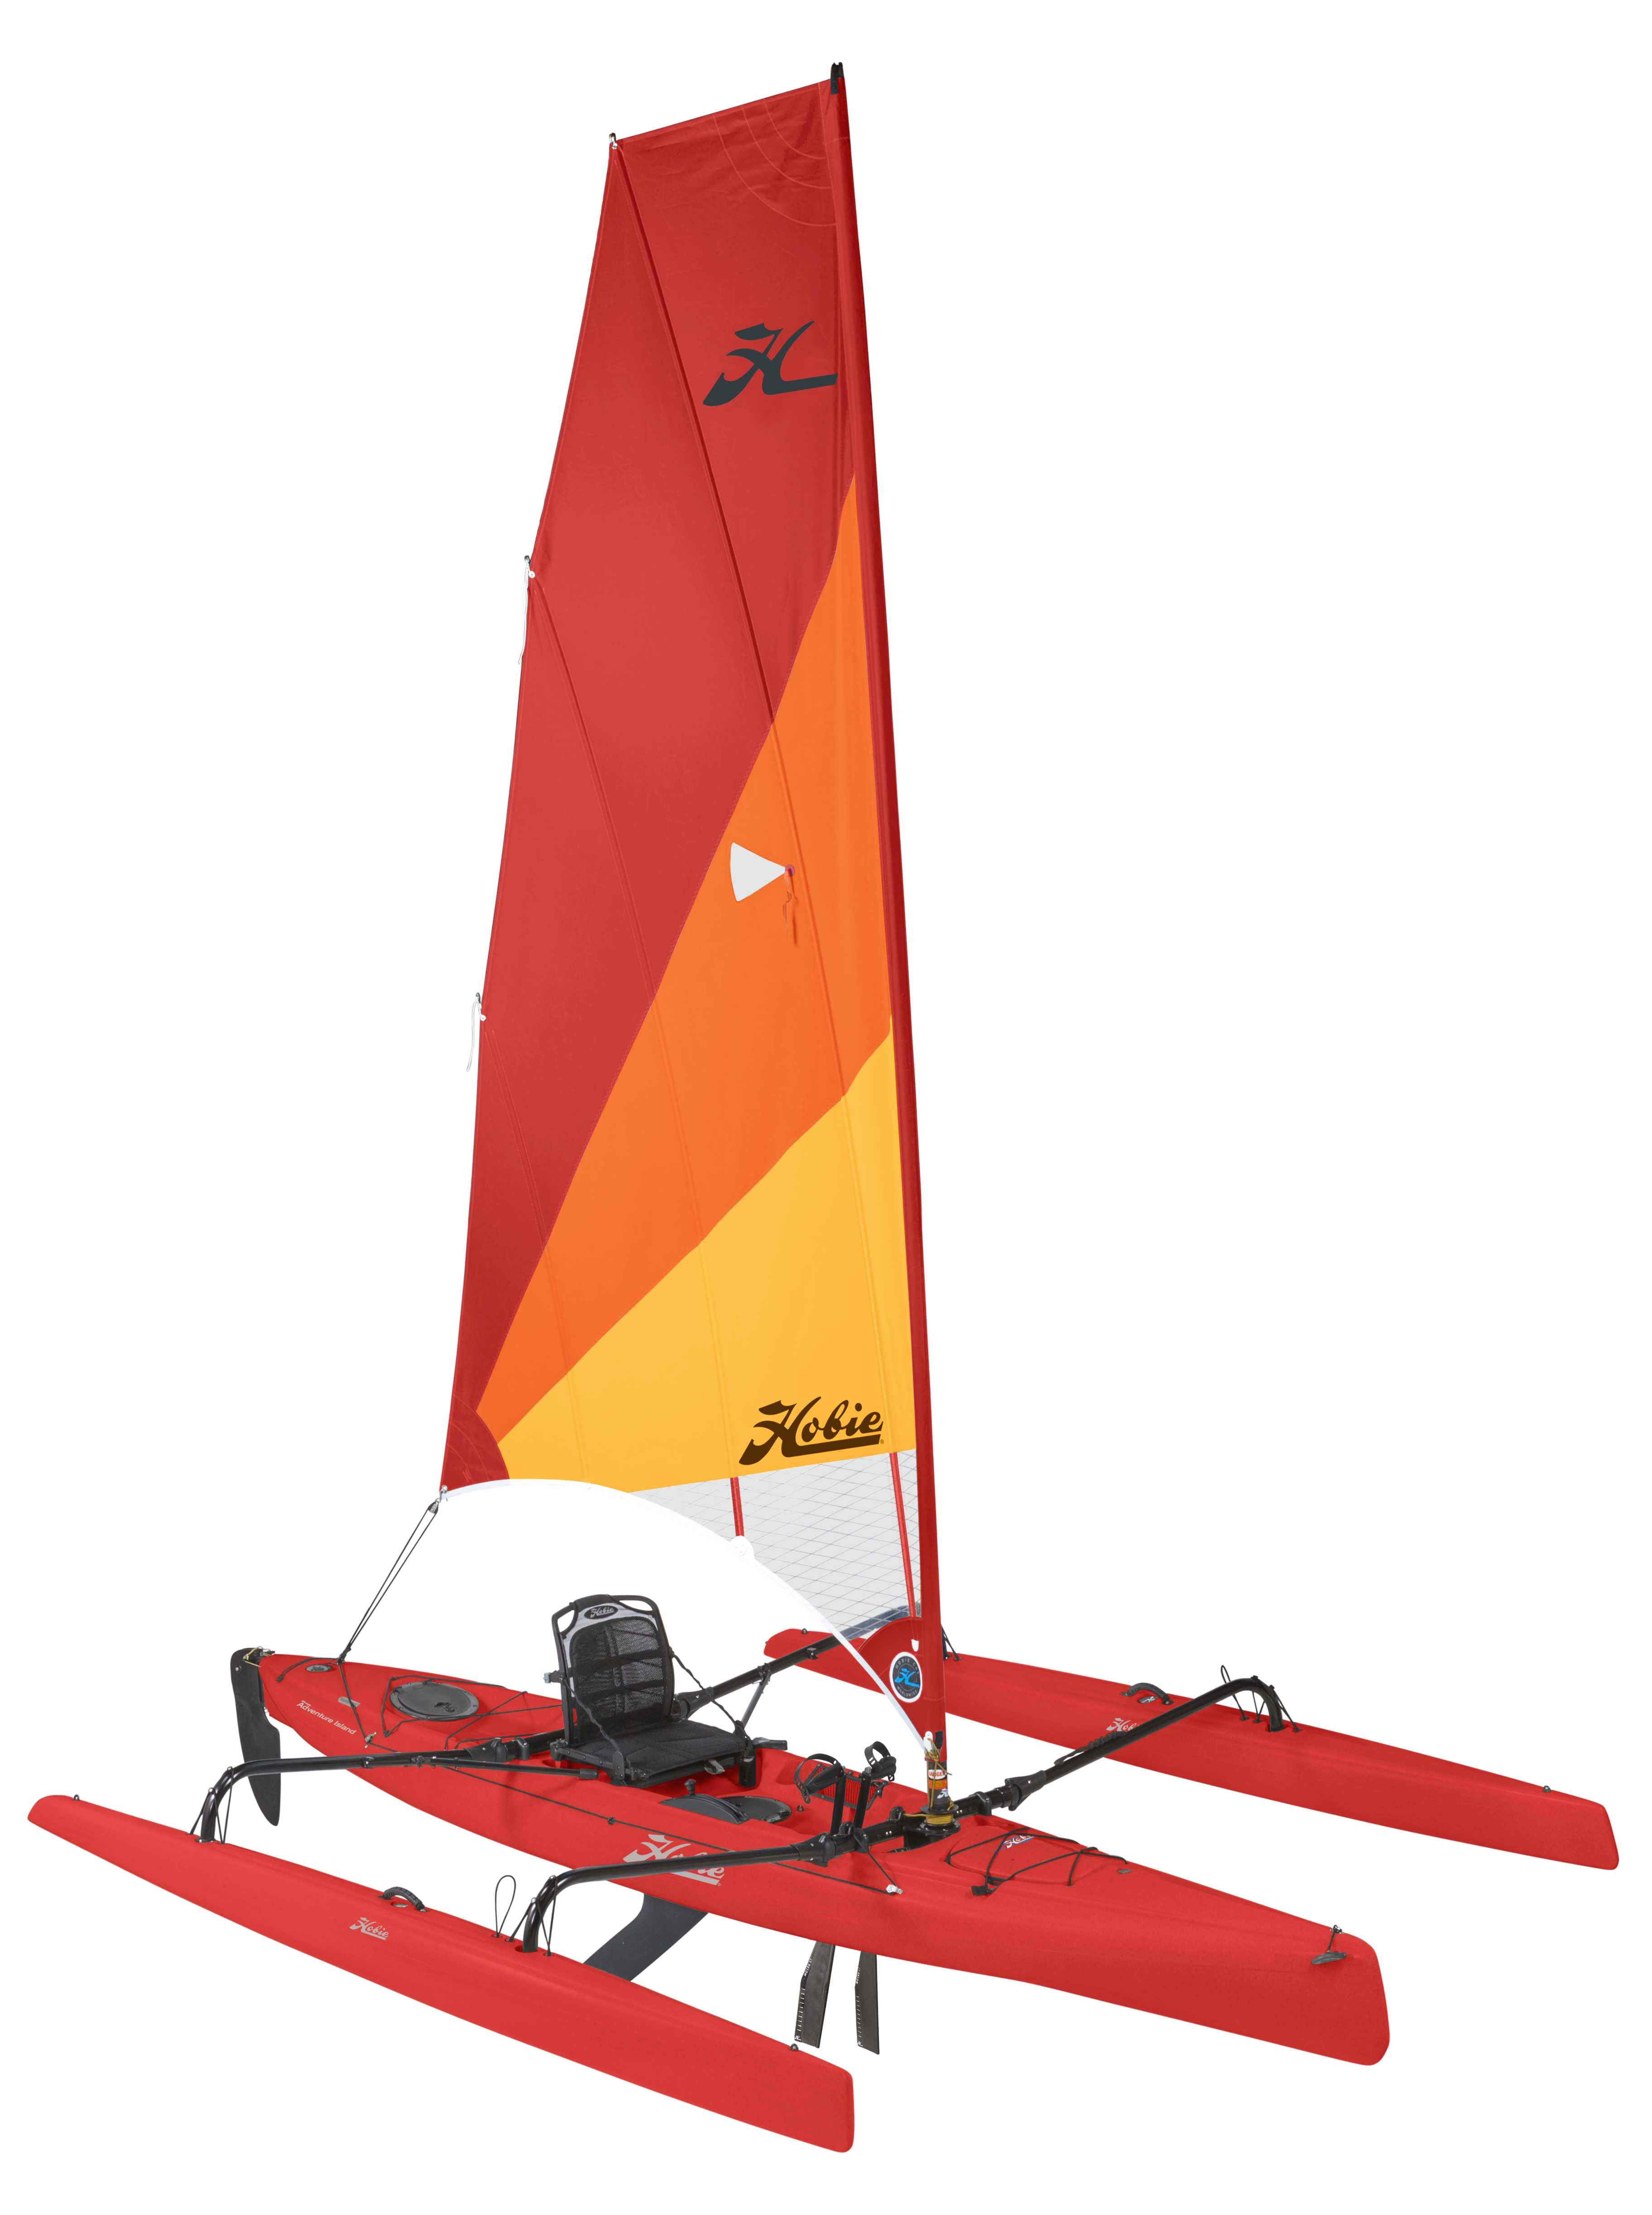 Hobie Forums • View topic - Getaway or Weta for my next boat?